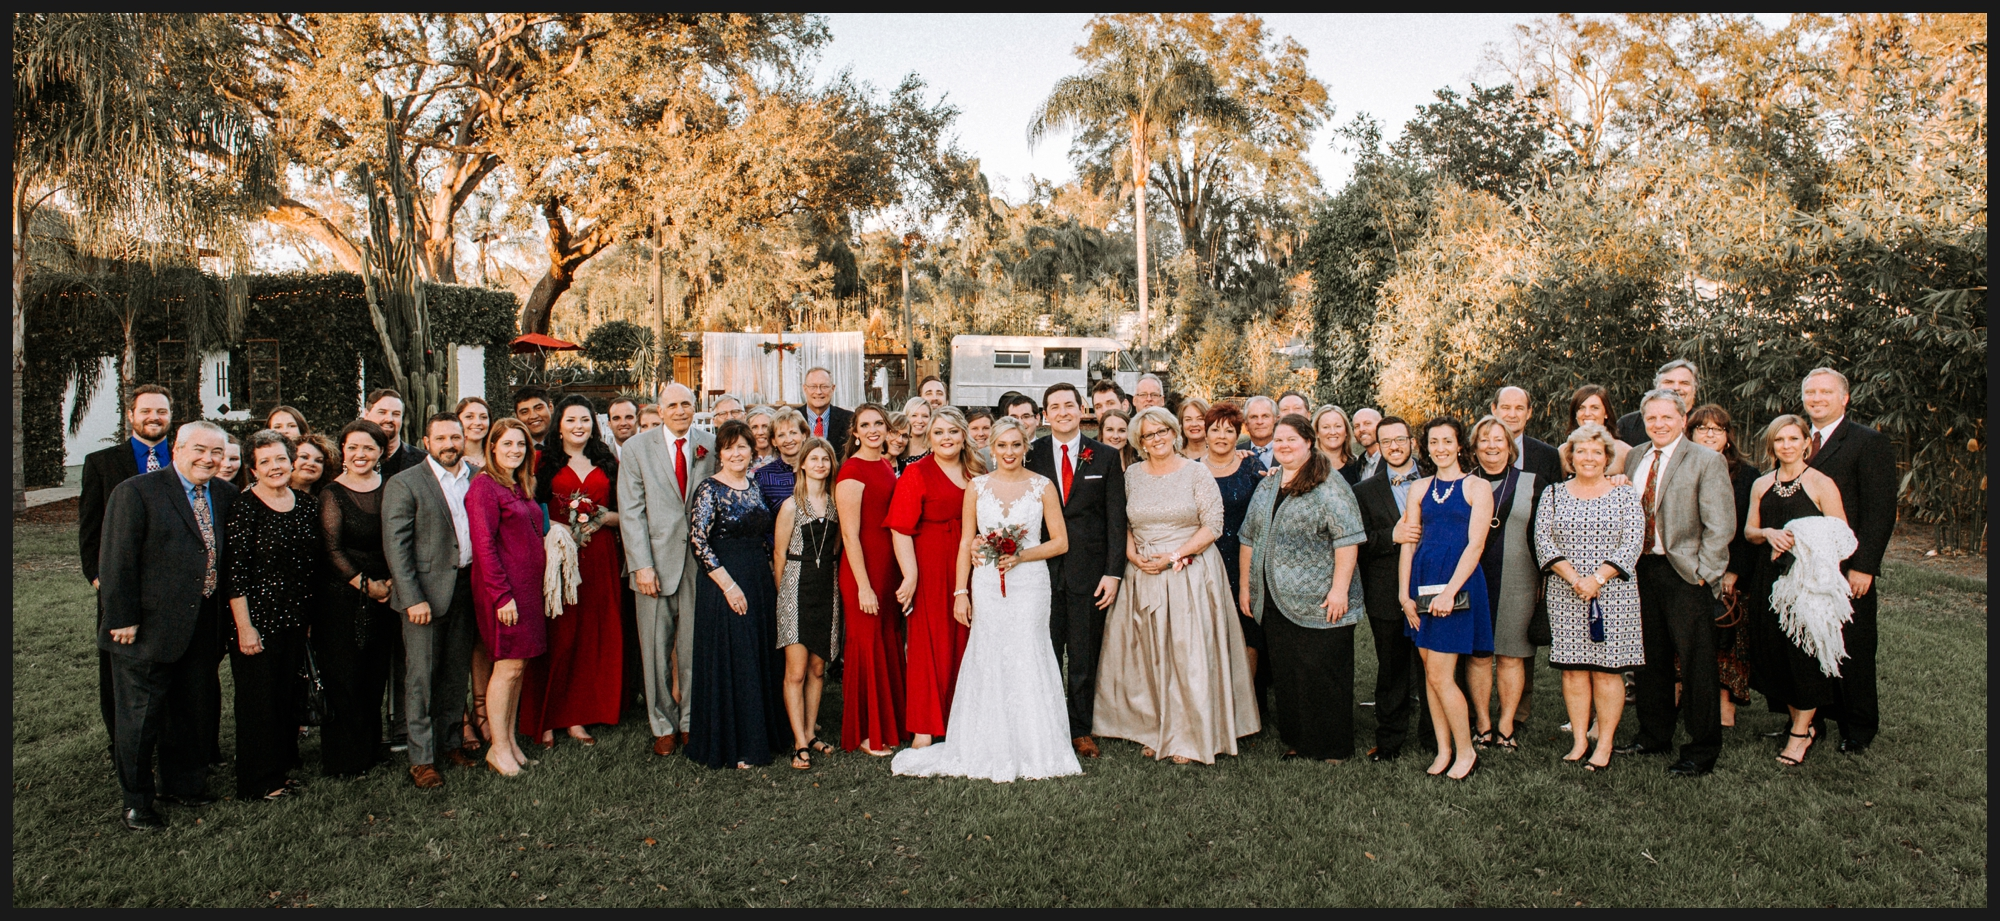 MitchandKatieOrlandoWeddingPhotographer_0106.jpg